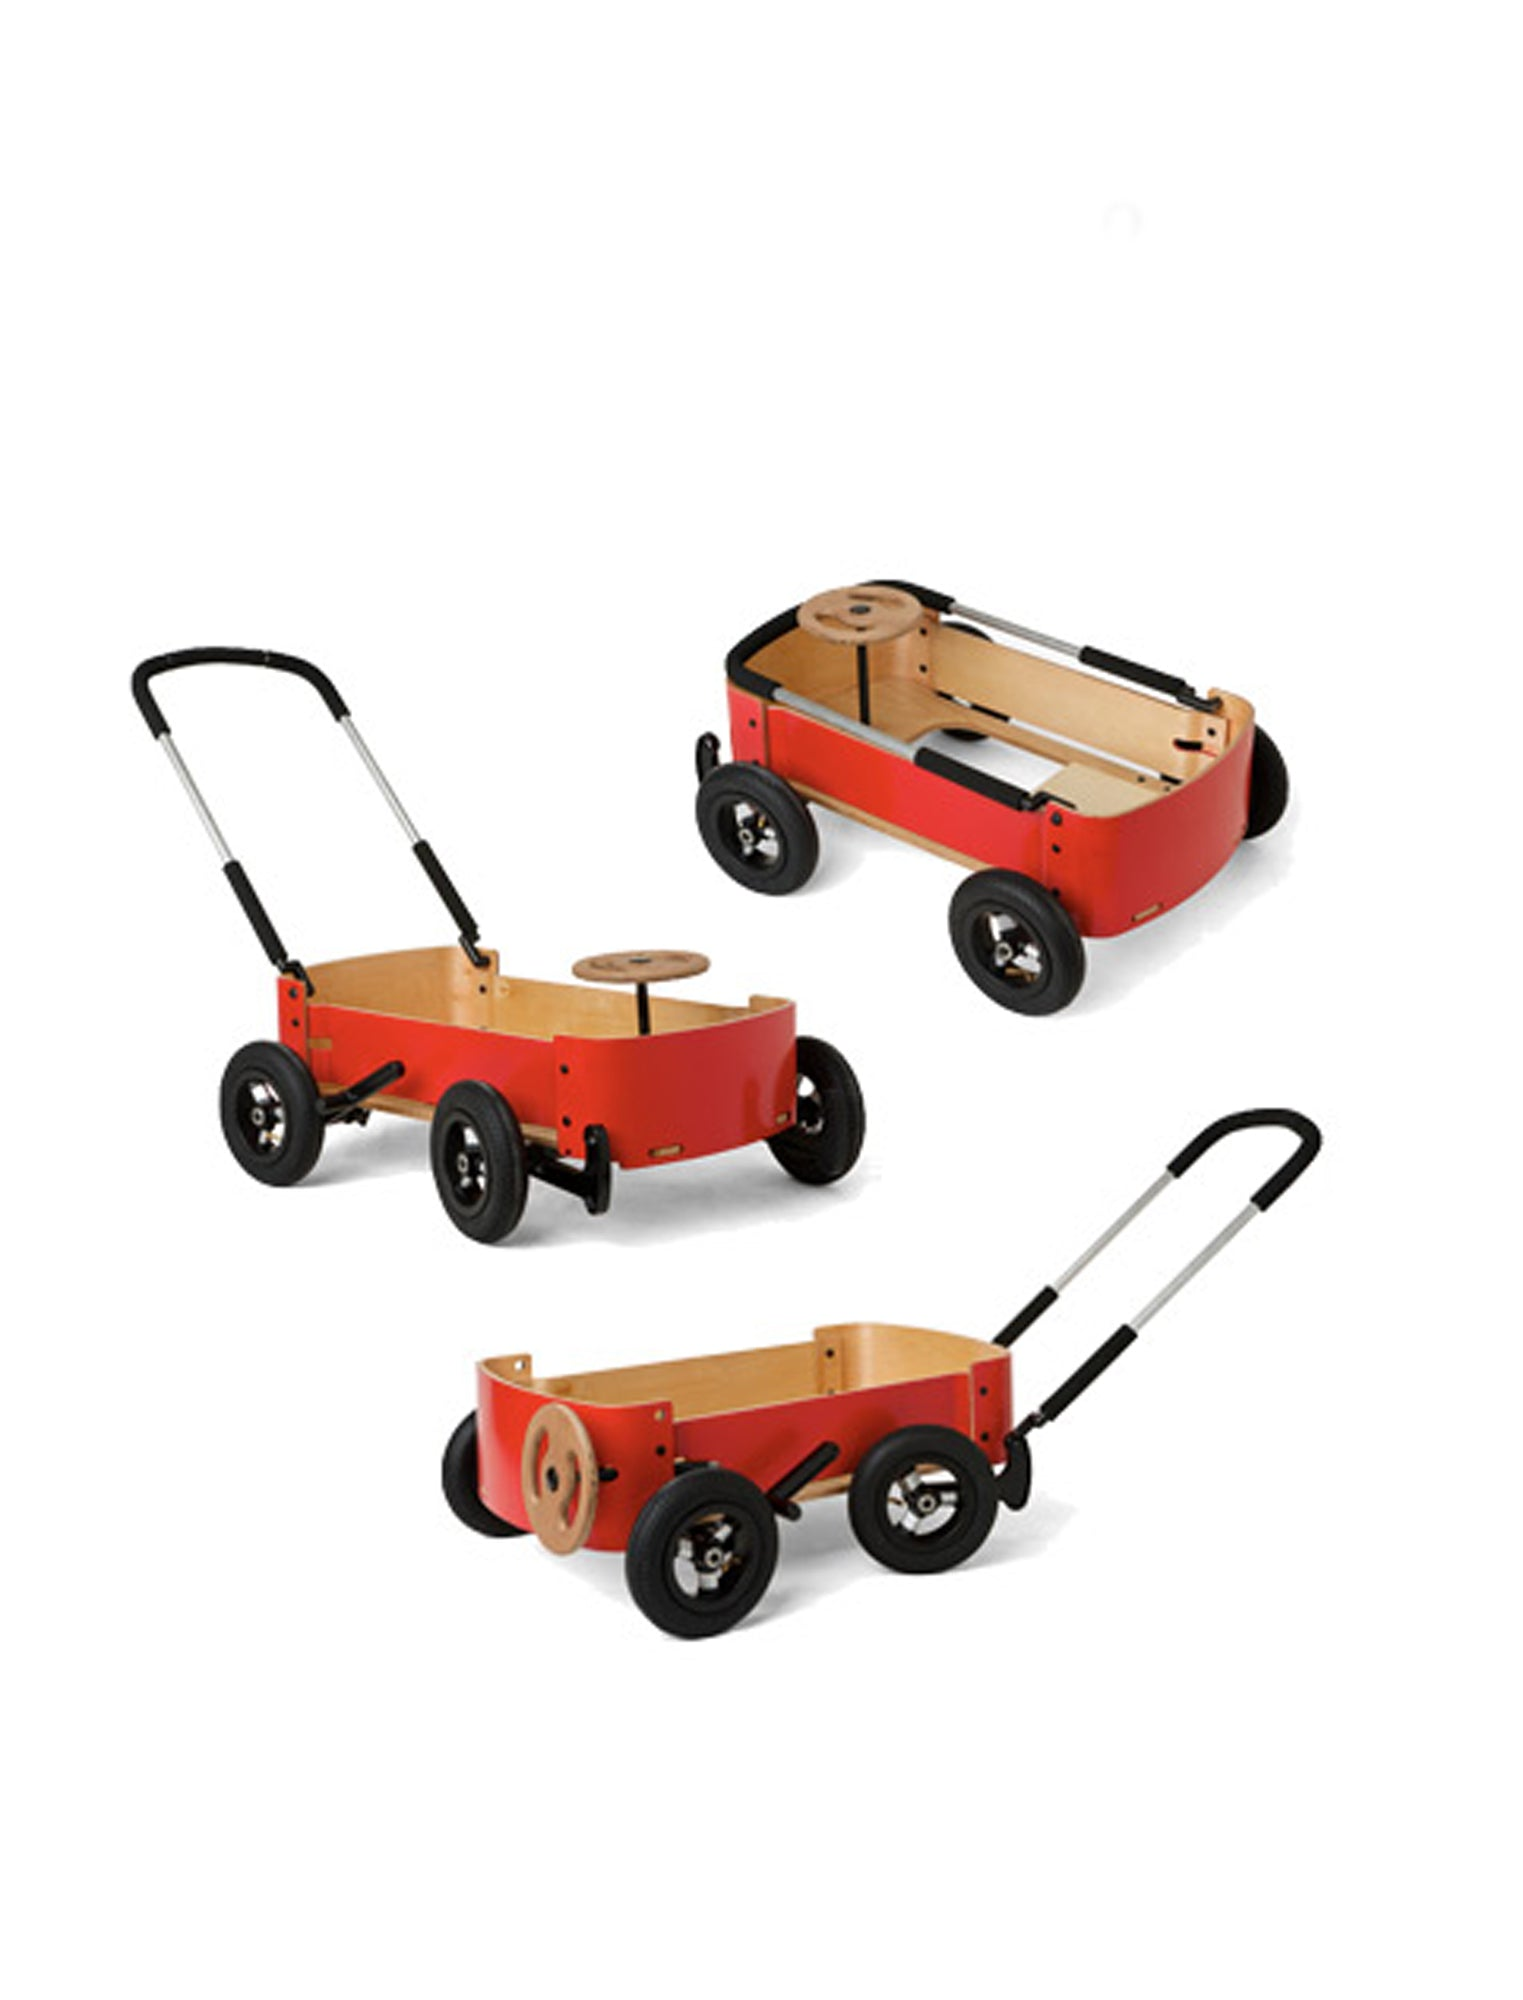 Wishbone Wooden Red Wagon 3 In 1 Free Shipping Australia Mr Kipp Eco Toys